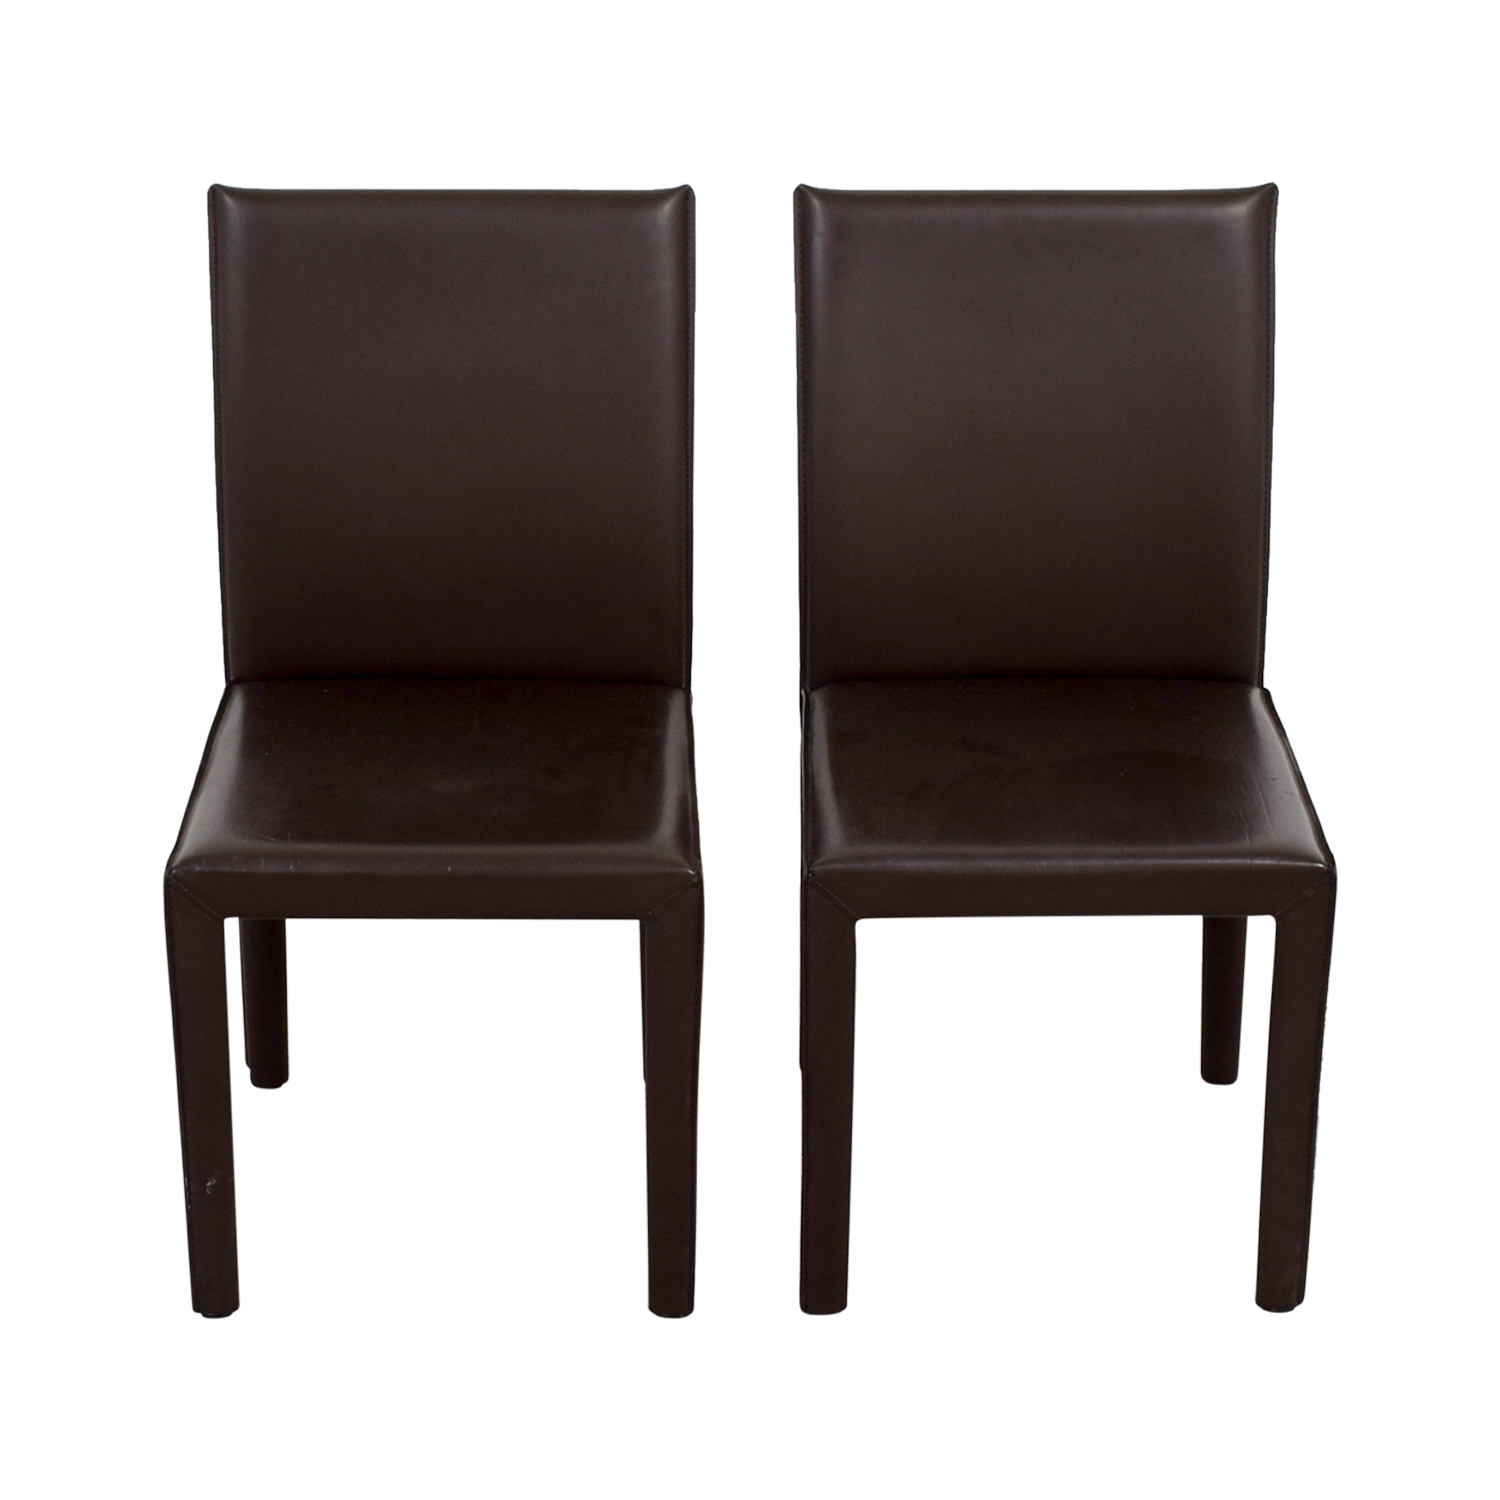 Maria Yee Maria Yee Mondo Brown Leather Dining Chairs dimensions